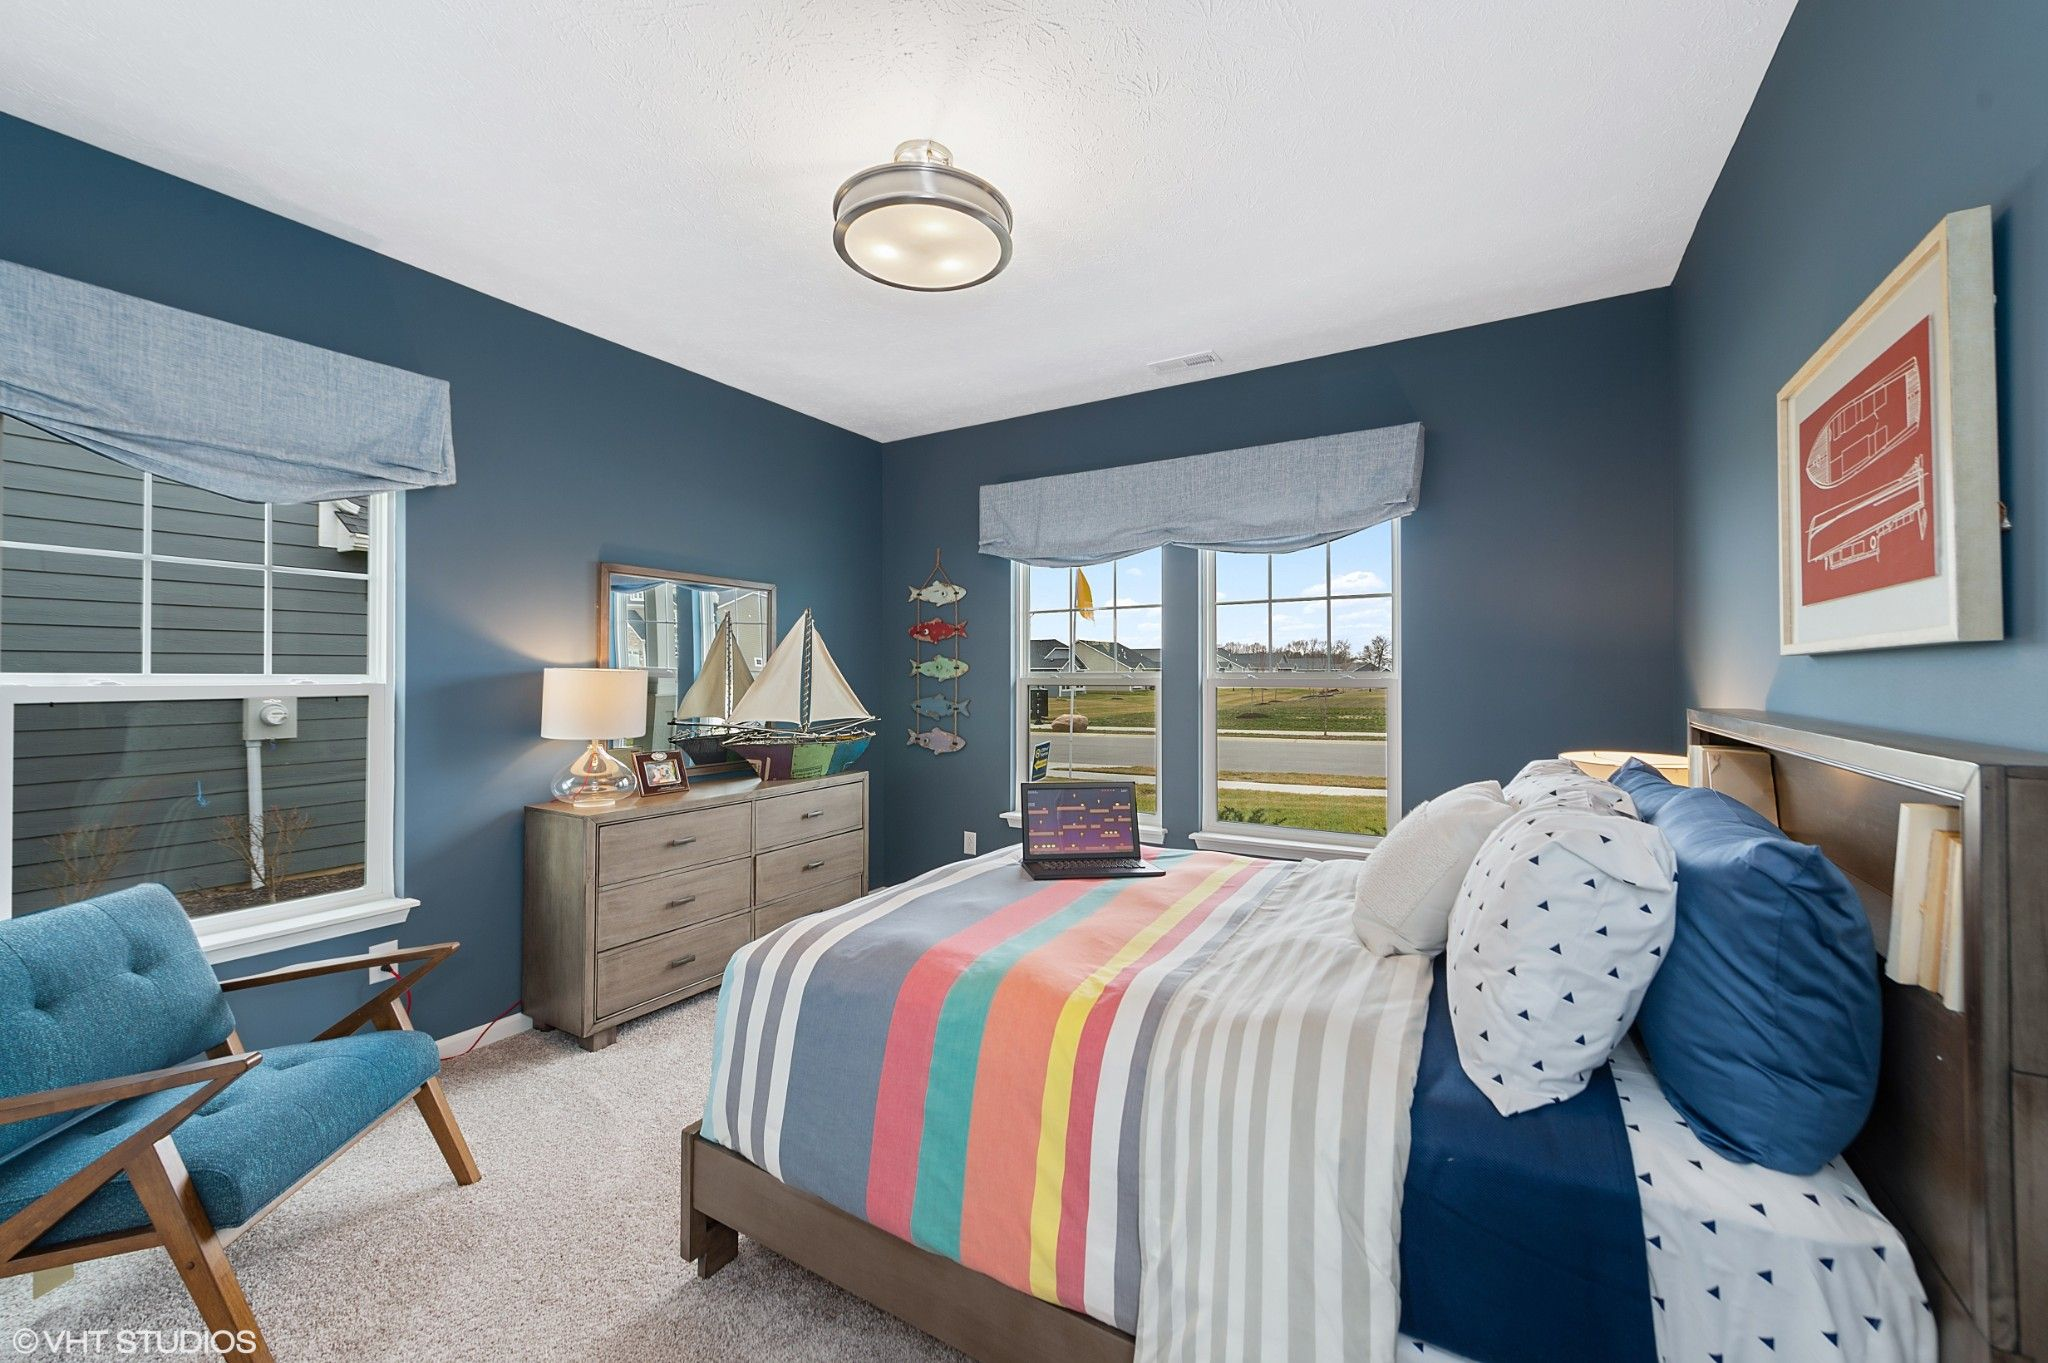 Bedroom featured in the Huntington By Olthof Homes in Fort Wayne, IN